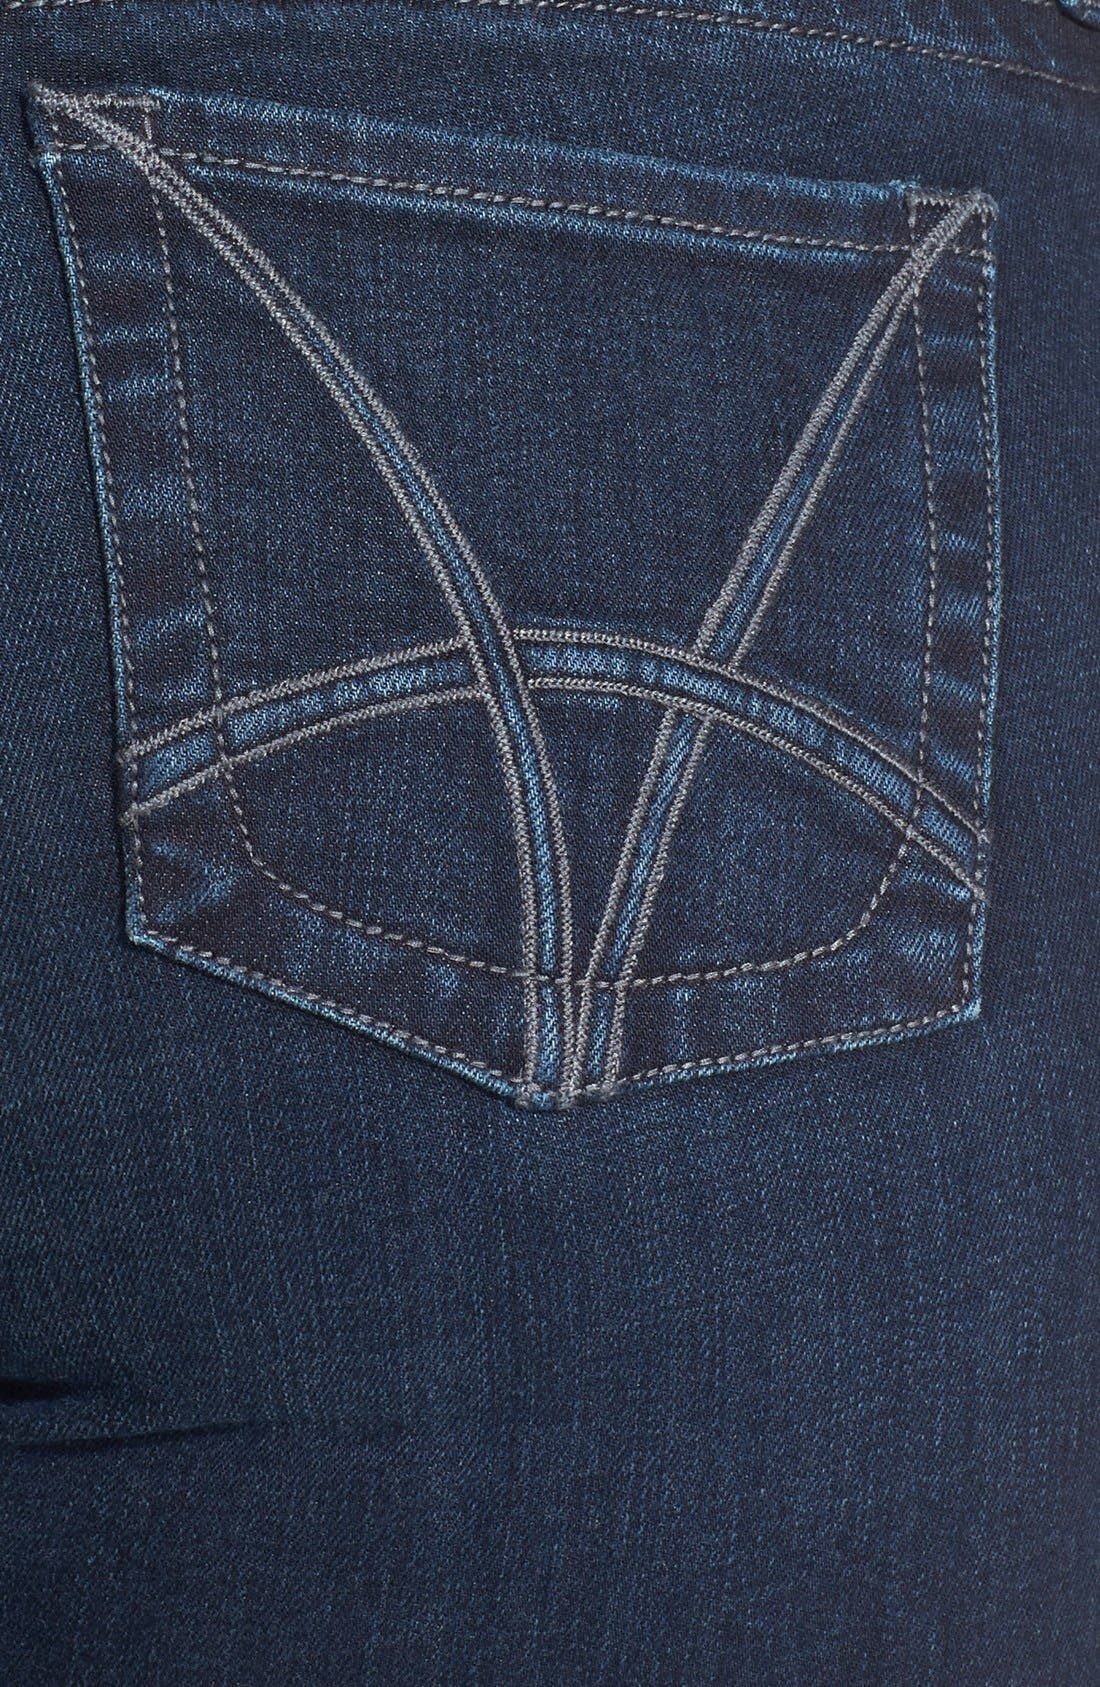 Alternate Image 3  - KUT from the Kloth 'Stevie' Straight Leg Jeans (Progressive) (Plus Size) (Online Only)